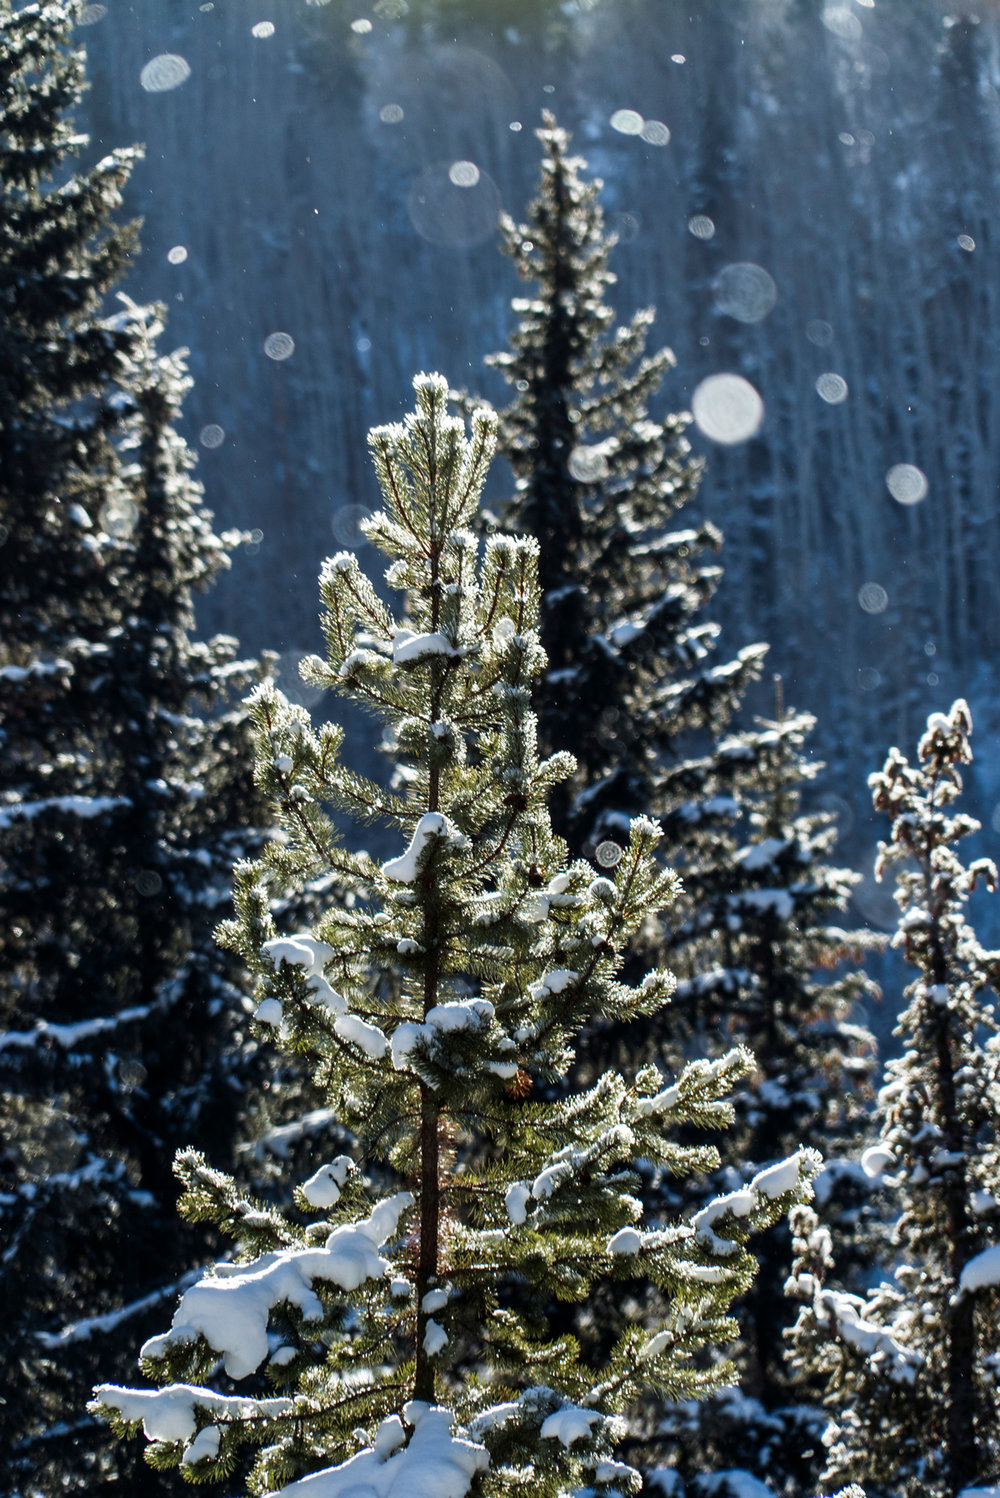 pines_tree_nature_outdoors_snow_winter_christmas.jpg